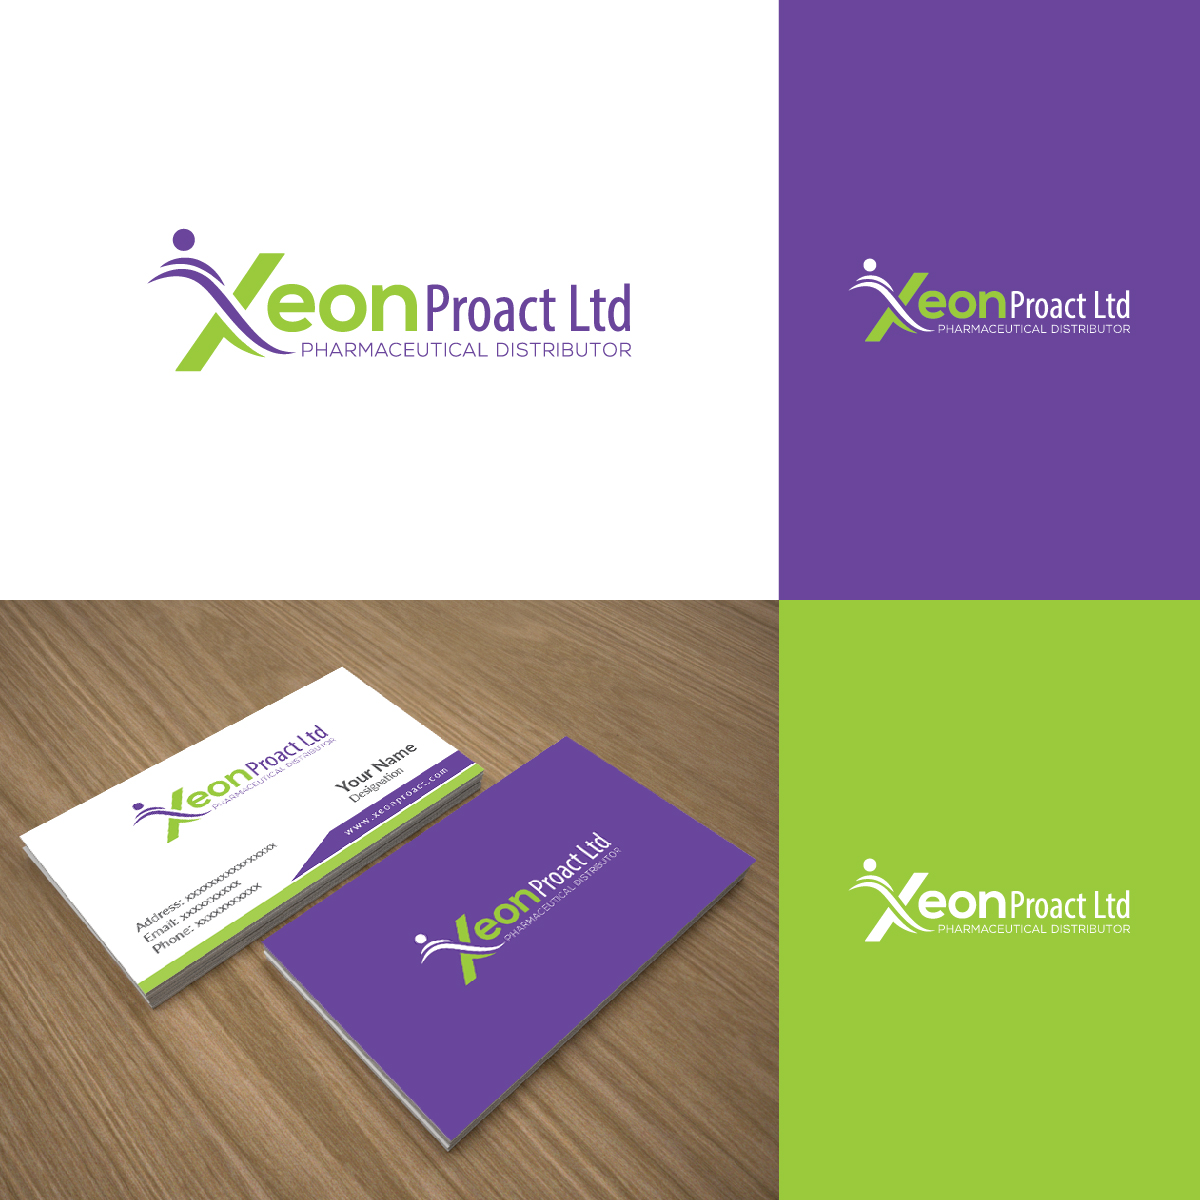 Modern, Colorful, Pharmaceutical Logo Design for Xeon Proact